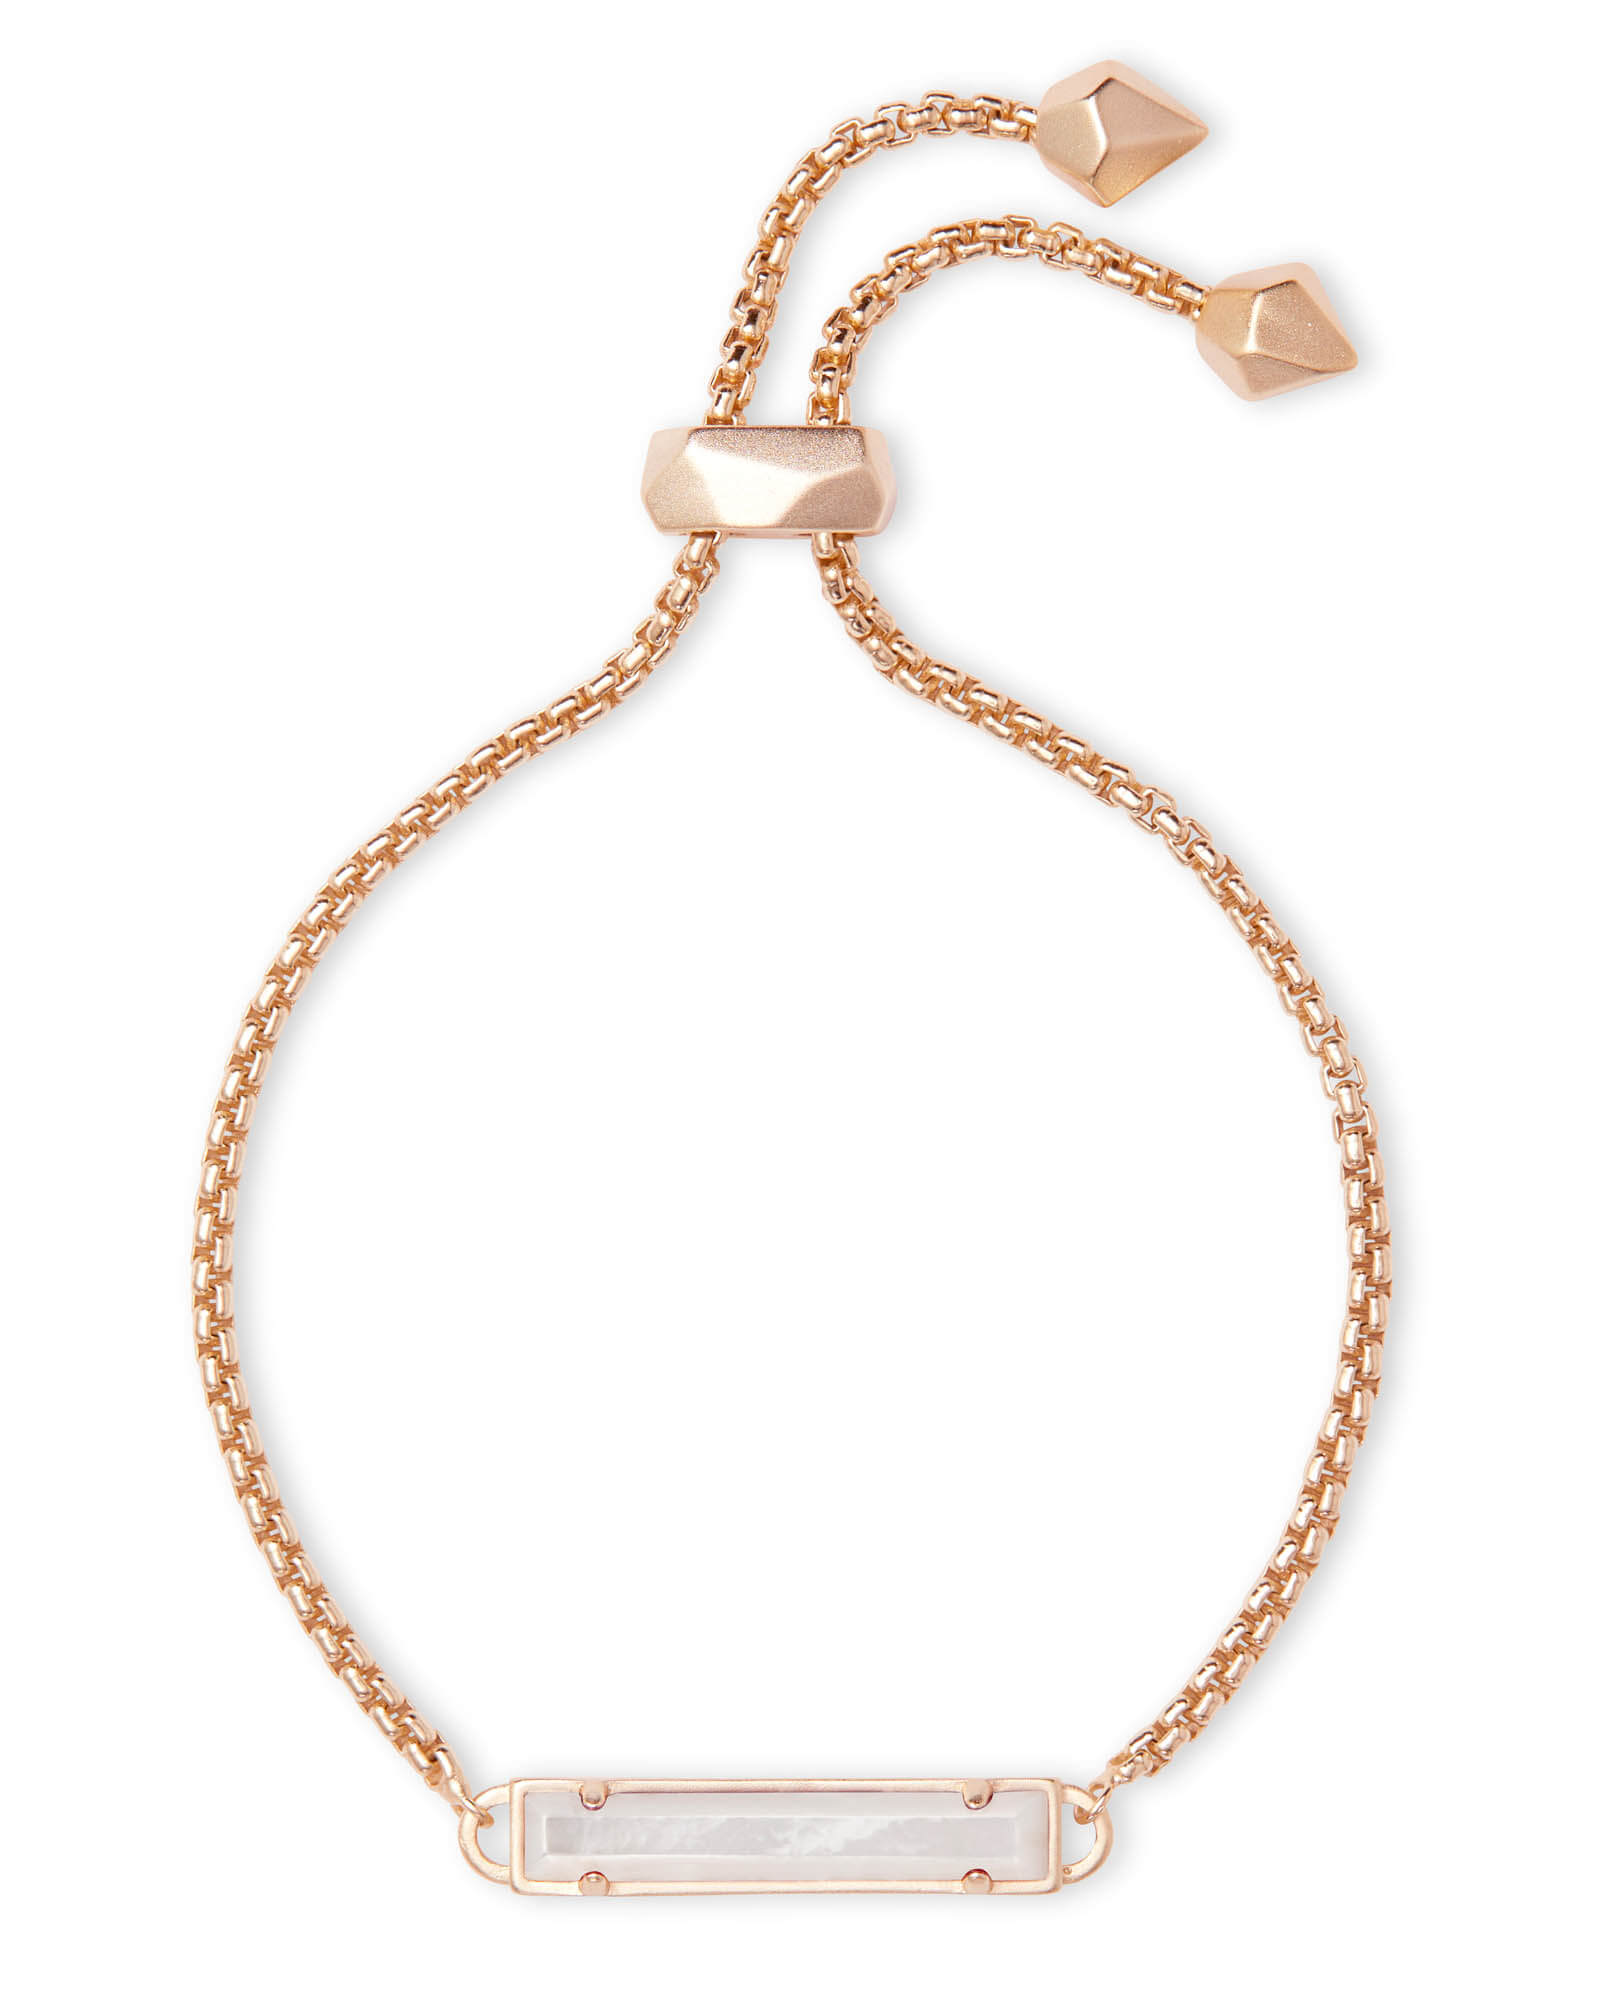 Stan Rose Gold Adjustable Chain Bracelet in Ivory Pearl